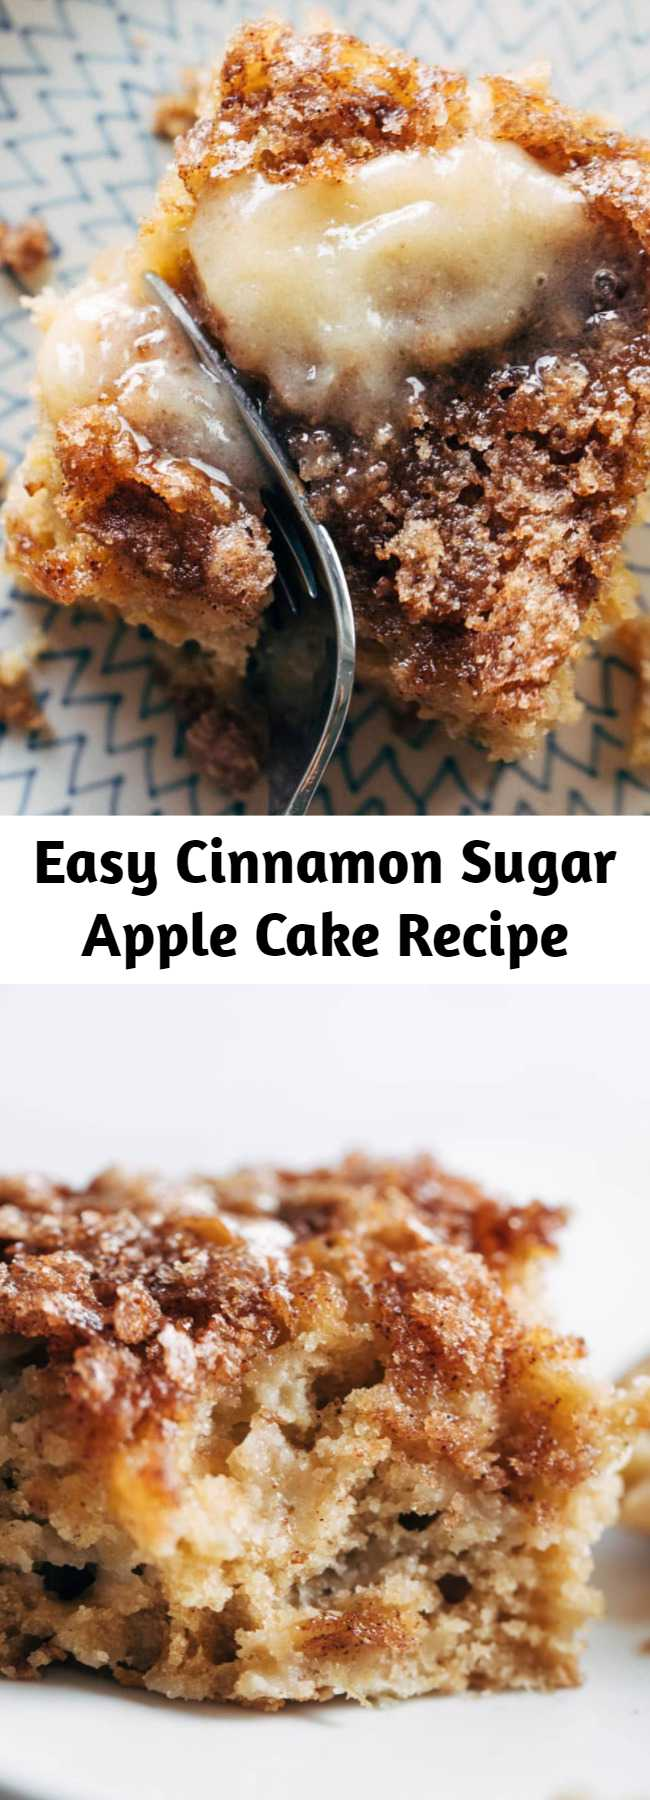 Easy Cinnamon Sugar Apple Cake Recipe - This simple cinnamon sugar apple cake is light and fluffy, loaded with fresh apples, and topped with a crunchy cinnamon sugar layer! It's low maintenance, highly snackable, and 100% as warming, fragrant, and cozy a basic apple cake should be.  #cake #apple #dessert #baking #recipe